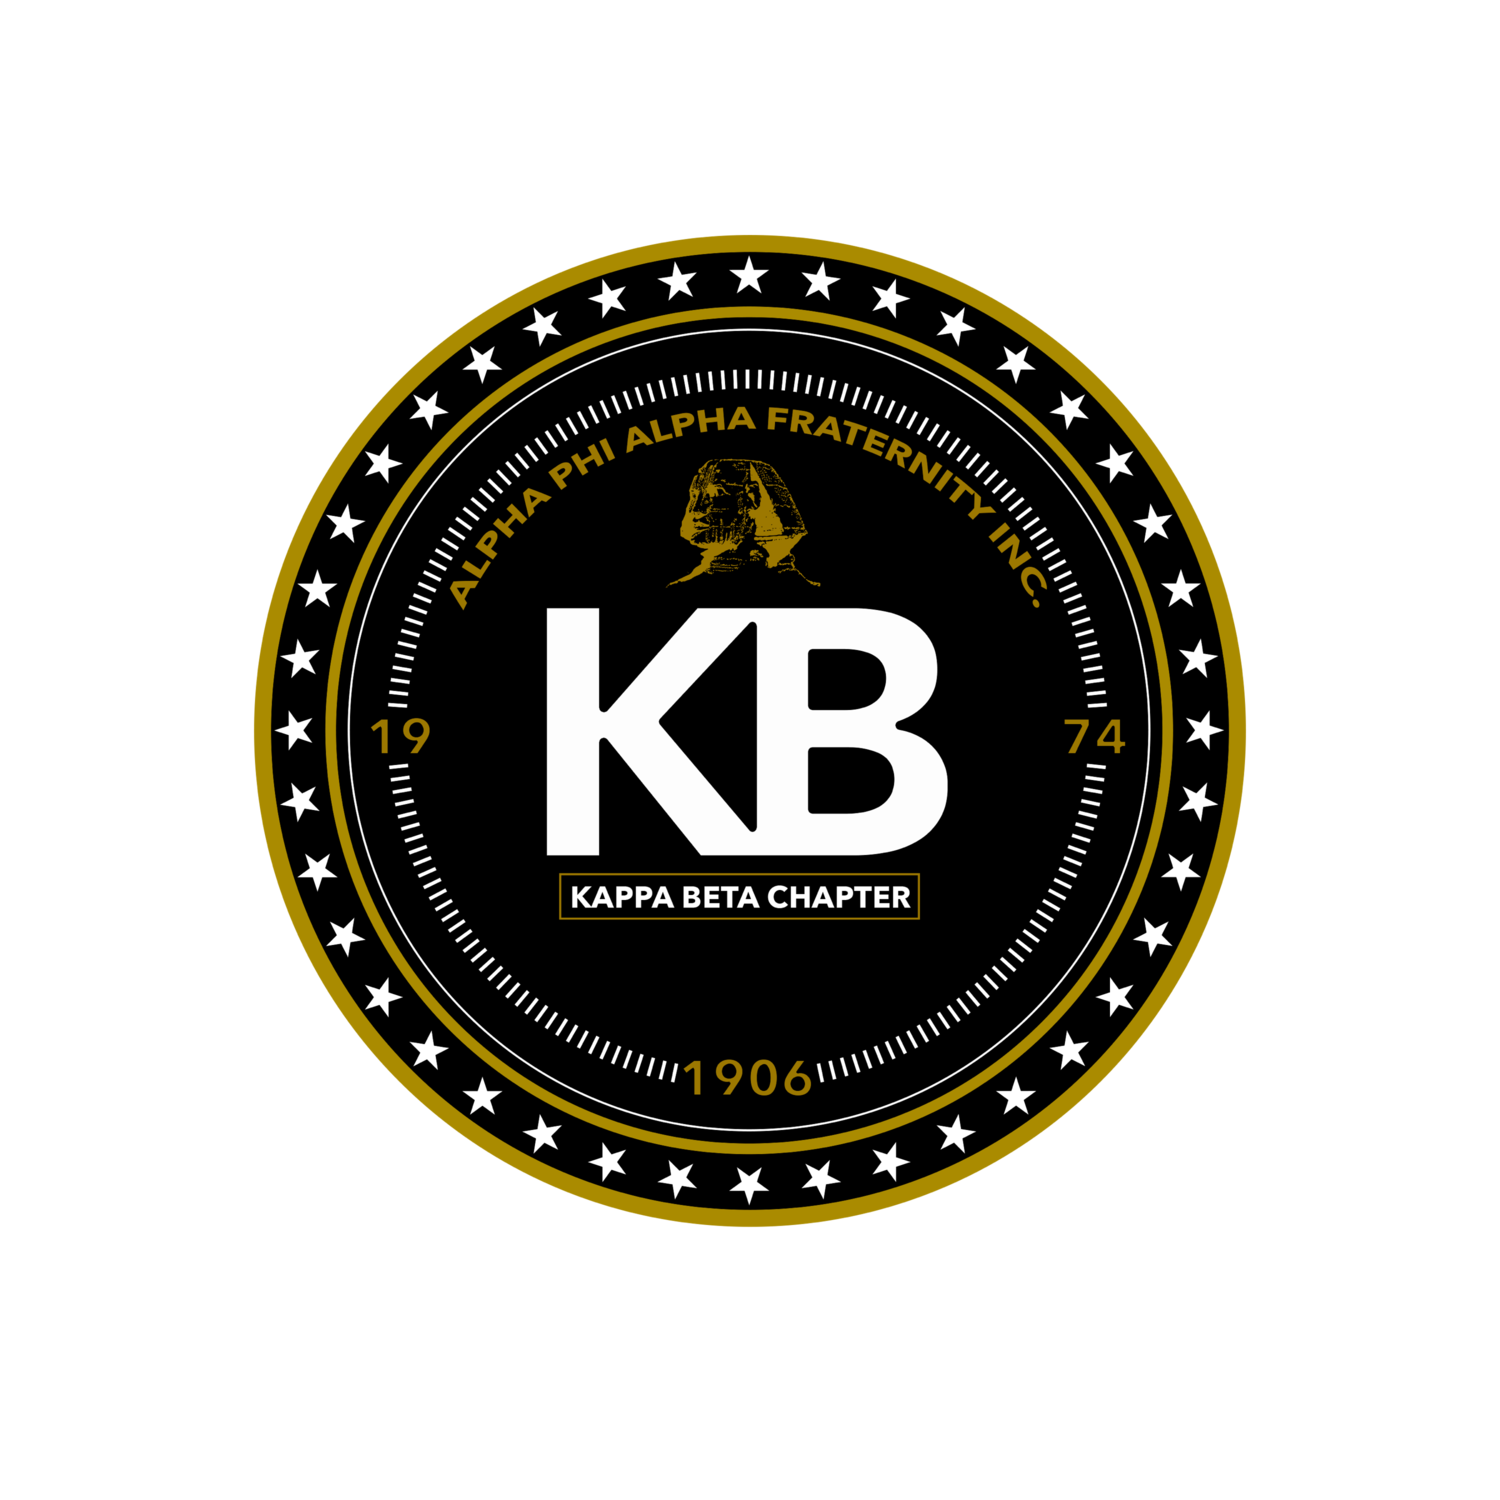 The Kappa Beta Chapter of Alpha Phi Alpha Fraternity Inc.